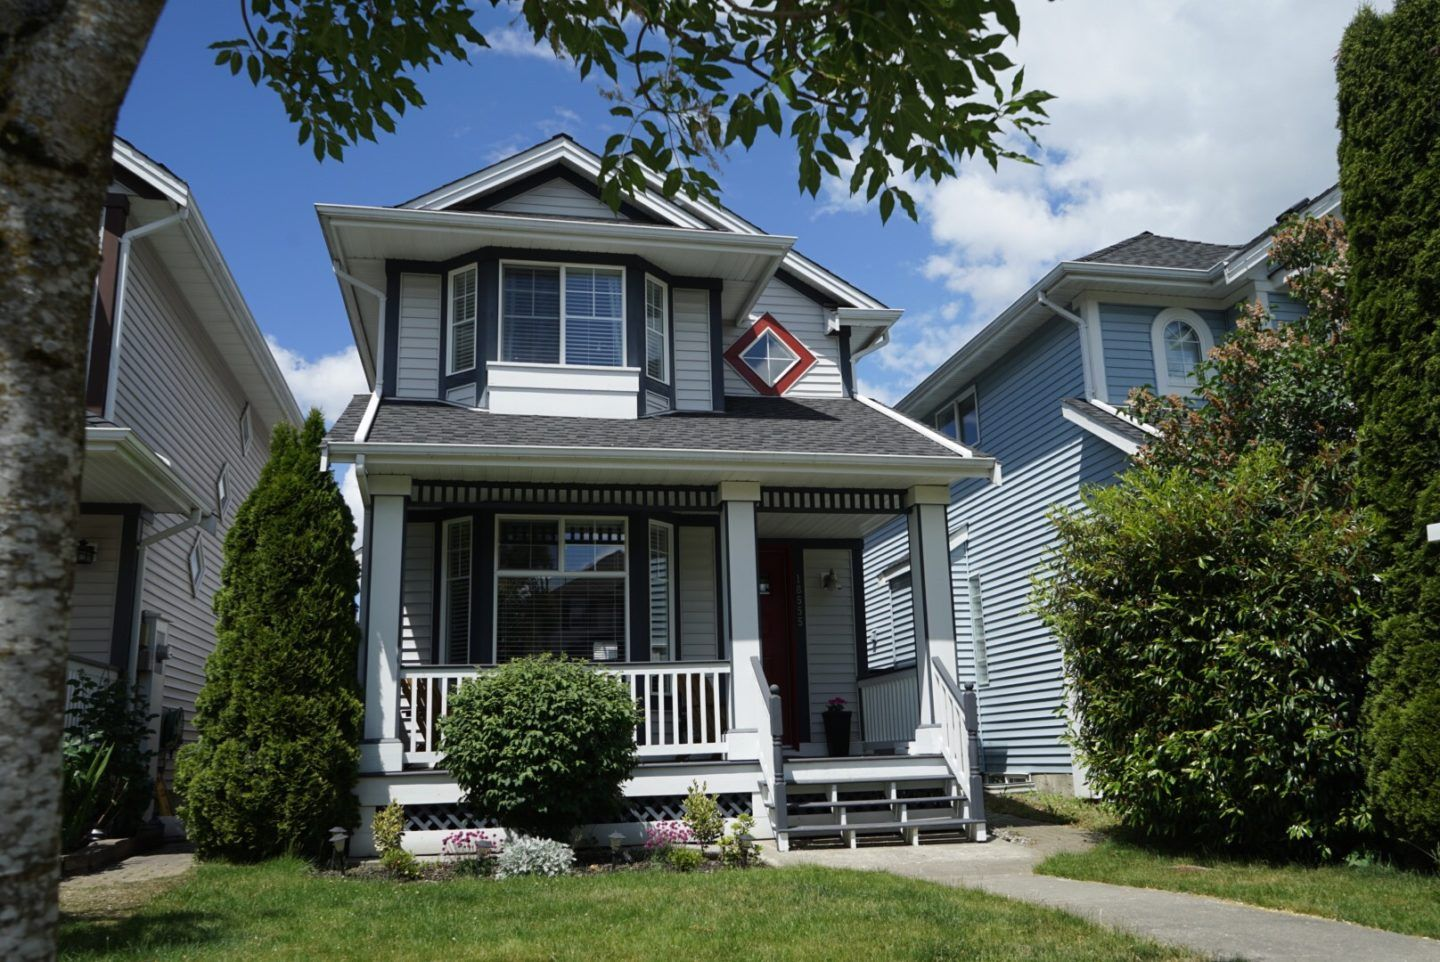 Main Photo: 18555 64B AVENUE in : Cloverdale BC House for sale : MLS®# R2250205